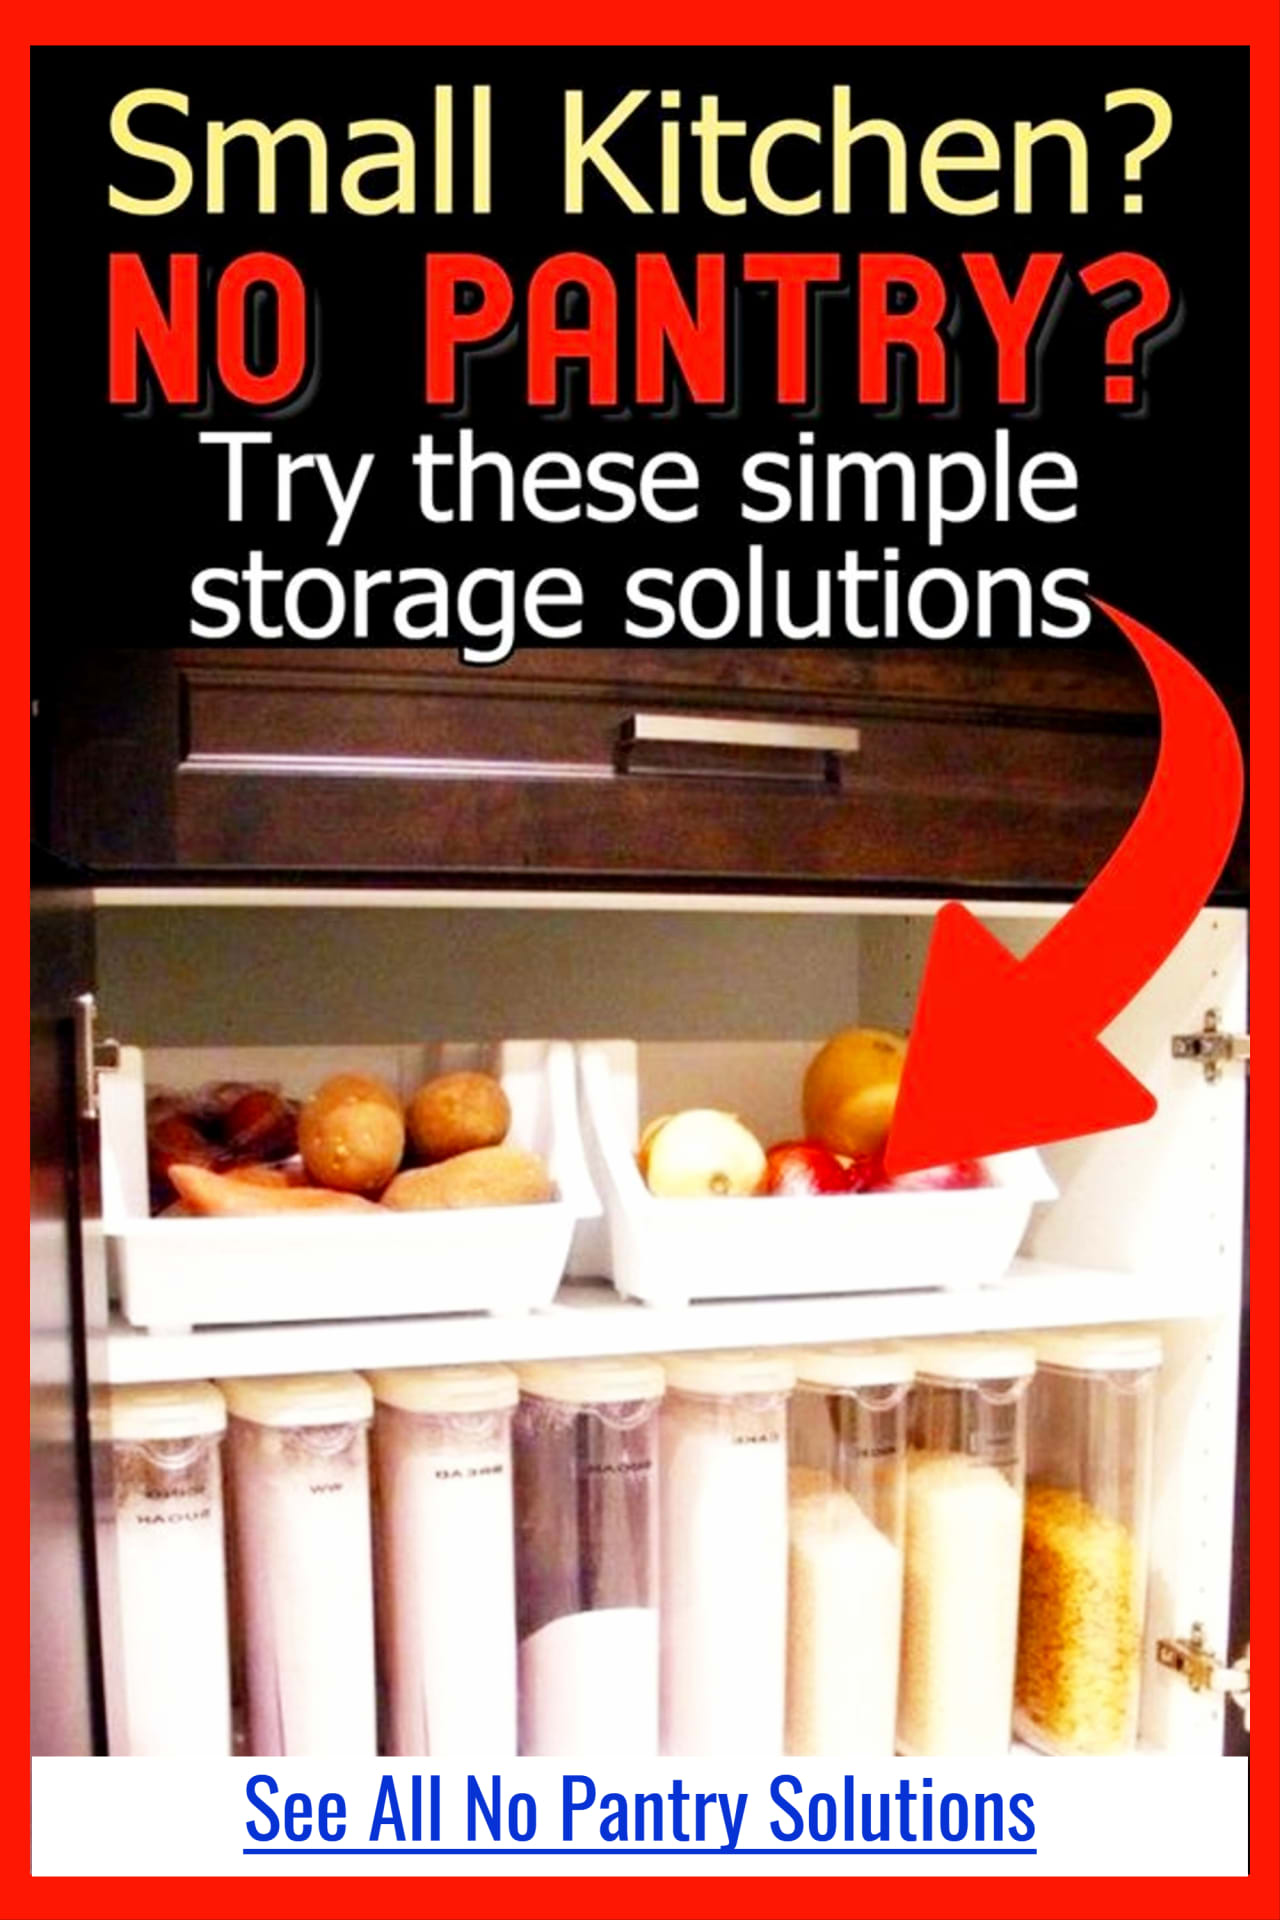 Pantry organization on a budget for small kitchens without a pantry or a small pantry with no storage space - no pantry solutions